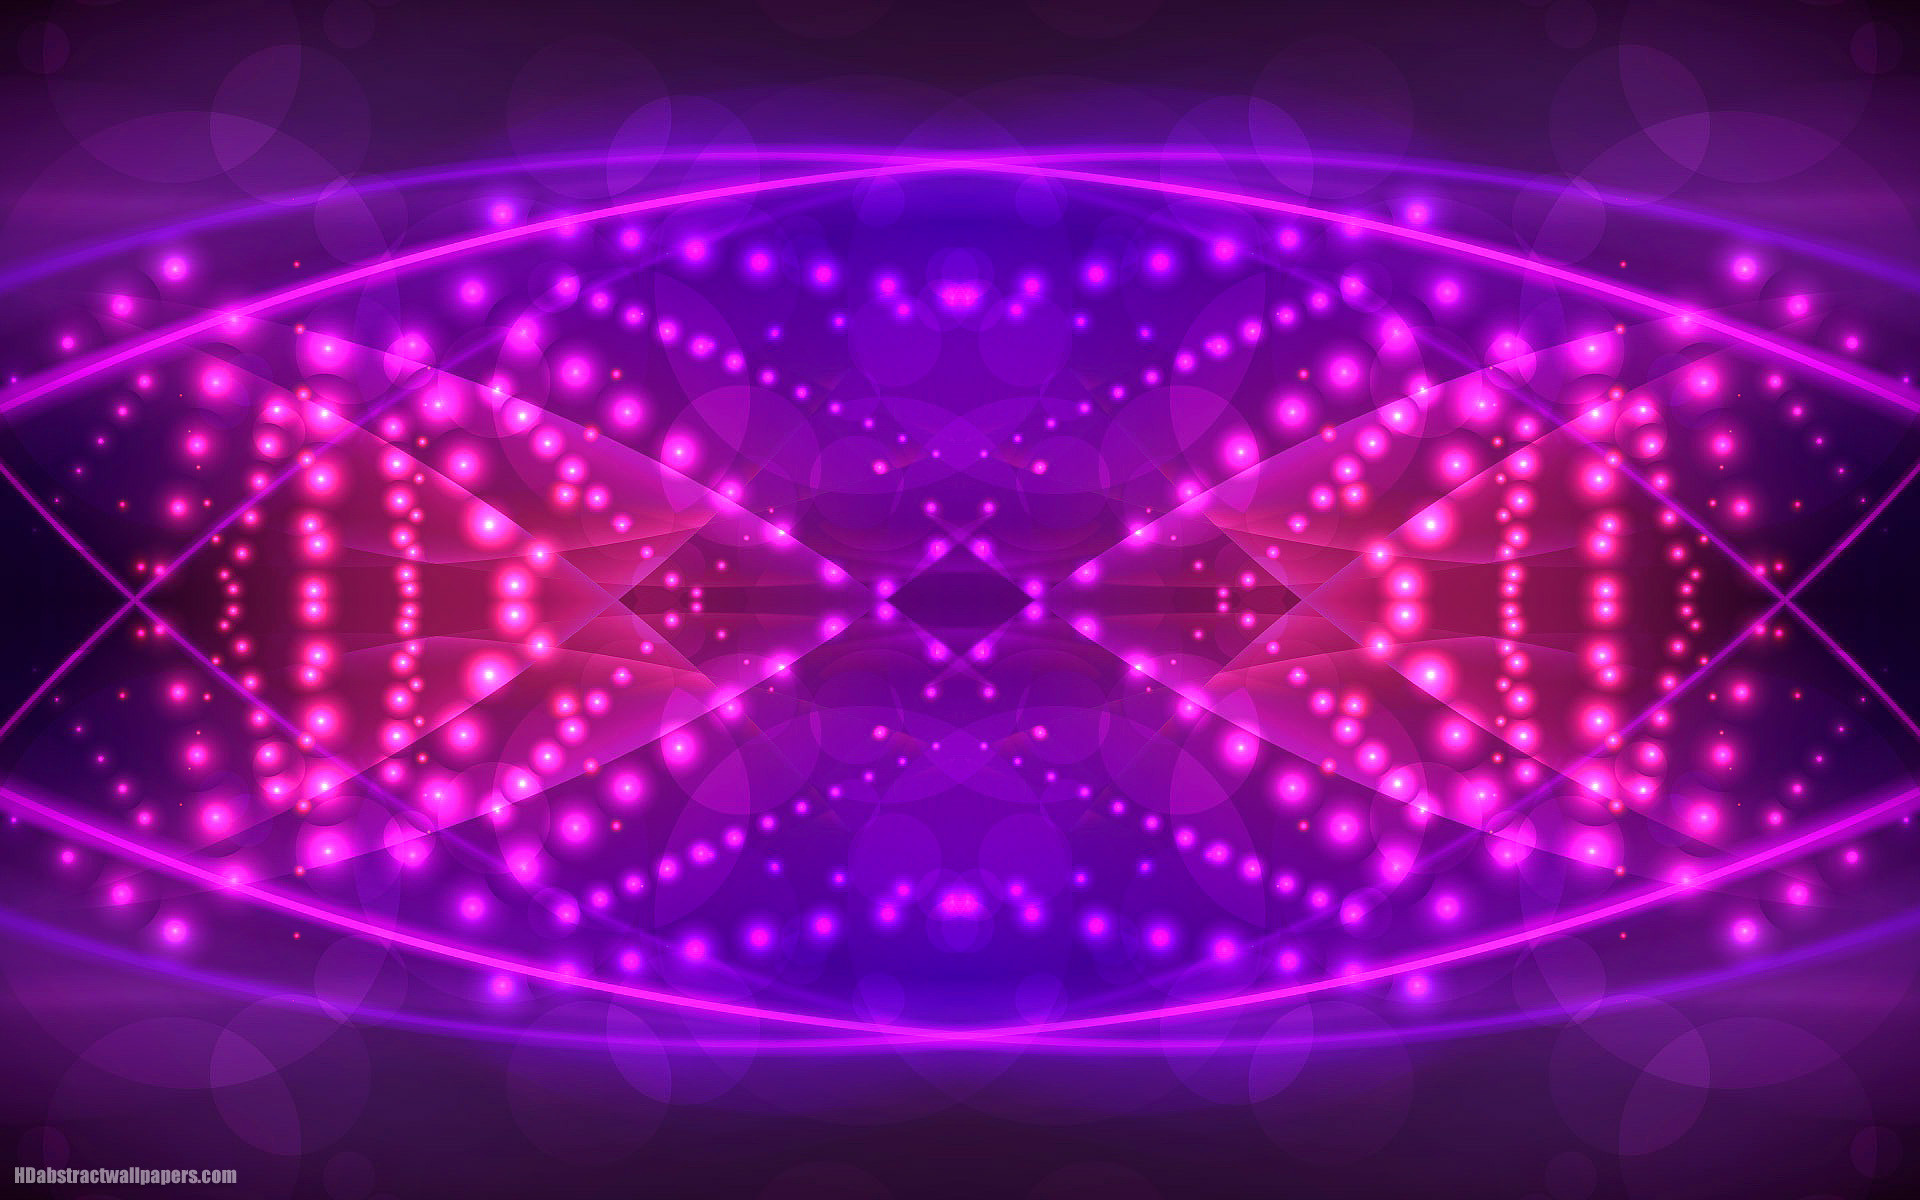 1920x1200 Purple pink abstract background wit.